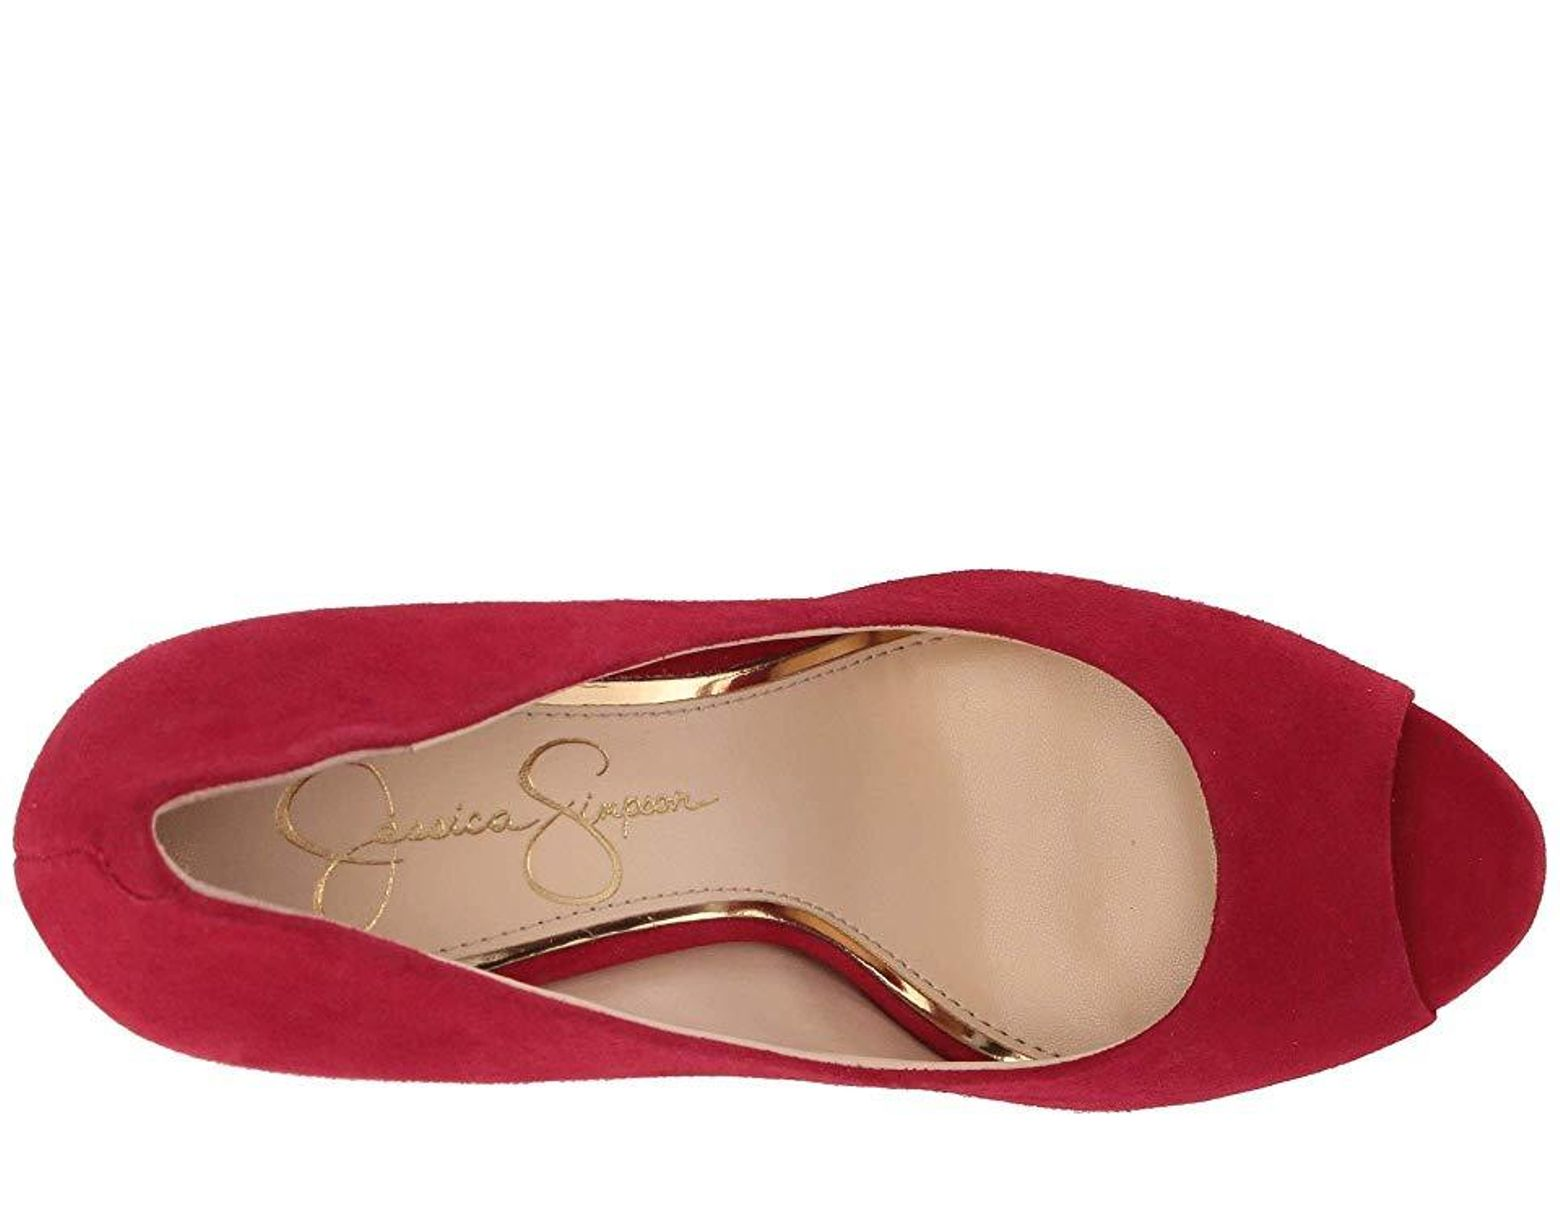 4119d5dcc3 Jessica Simpson Dalyn (maraschino Lux Kid Suede) High Heels in Red - Save  9% - Lyst